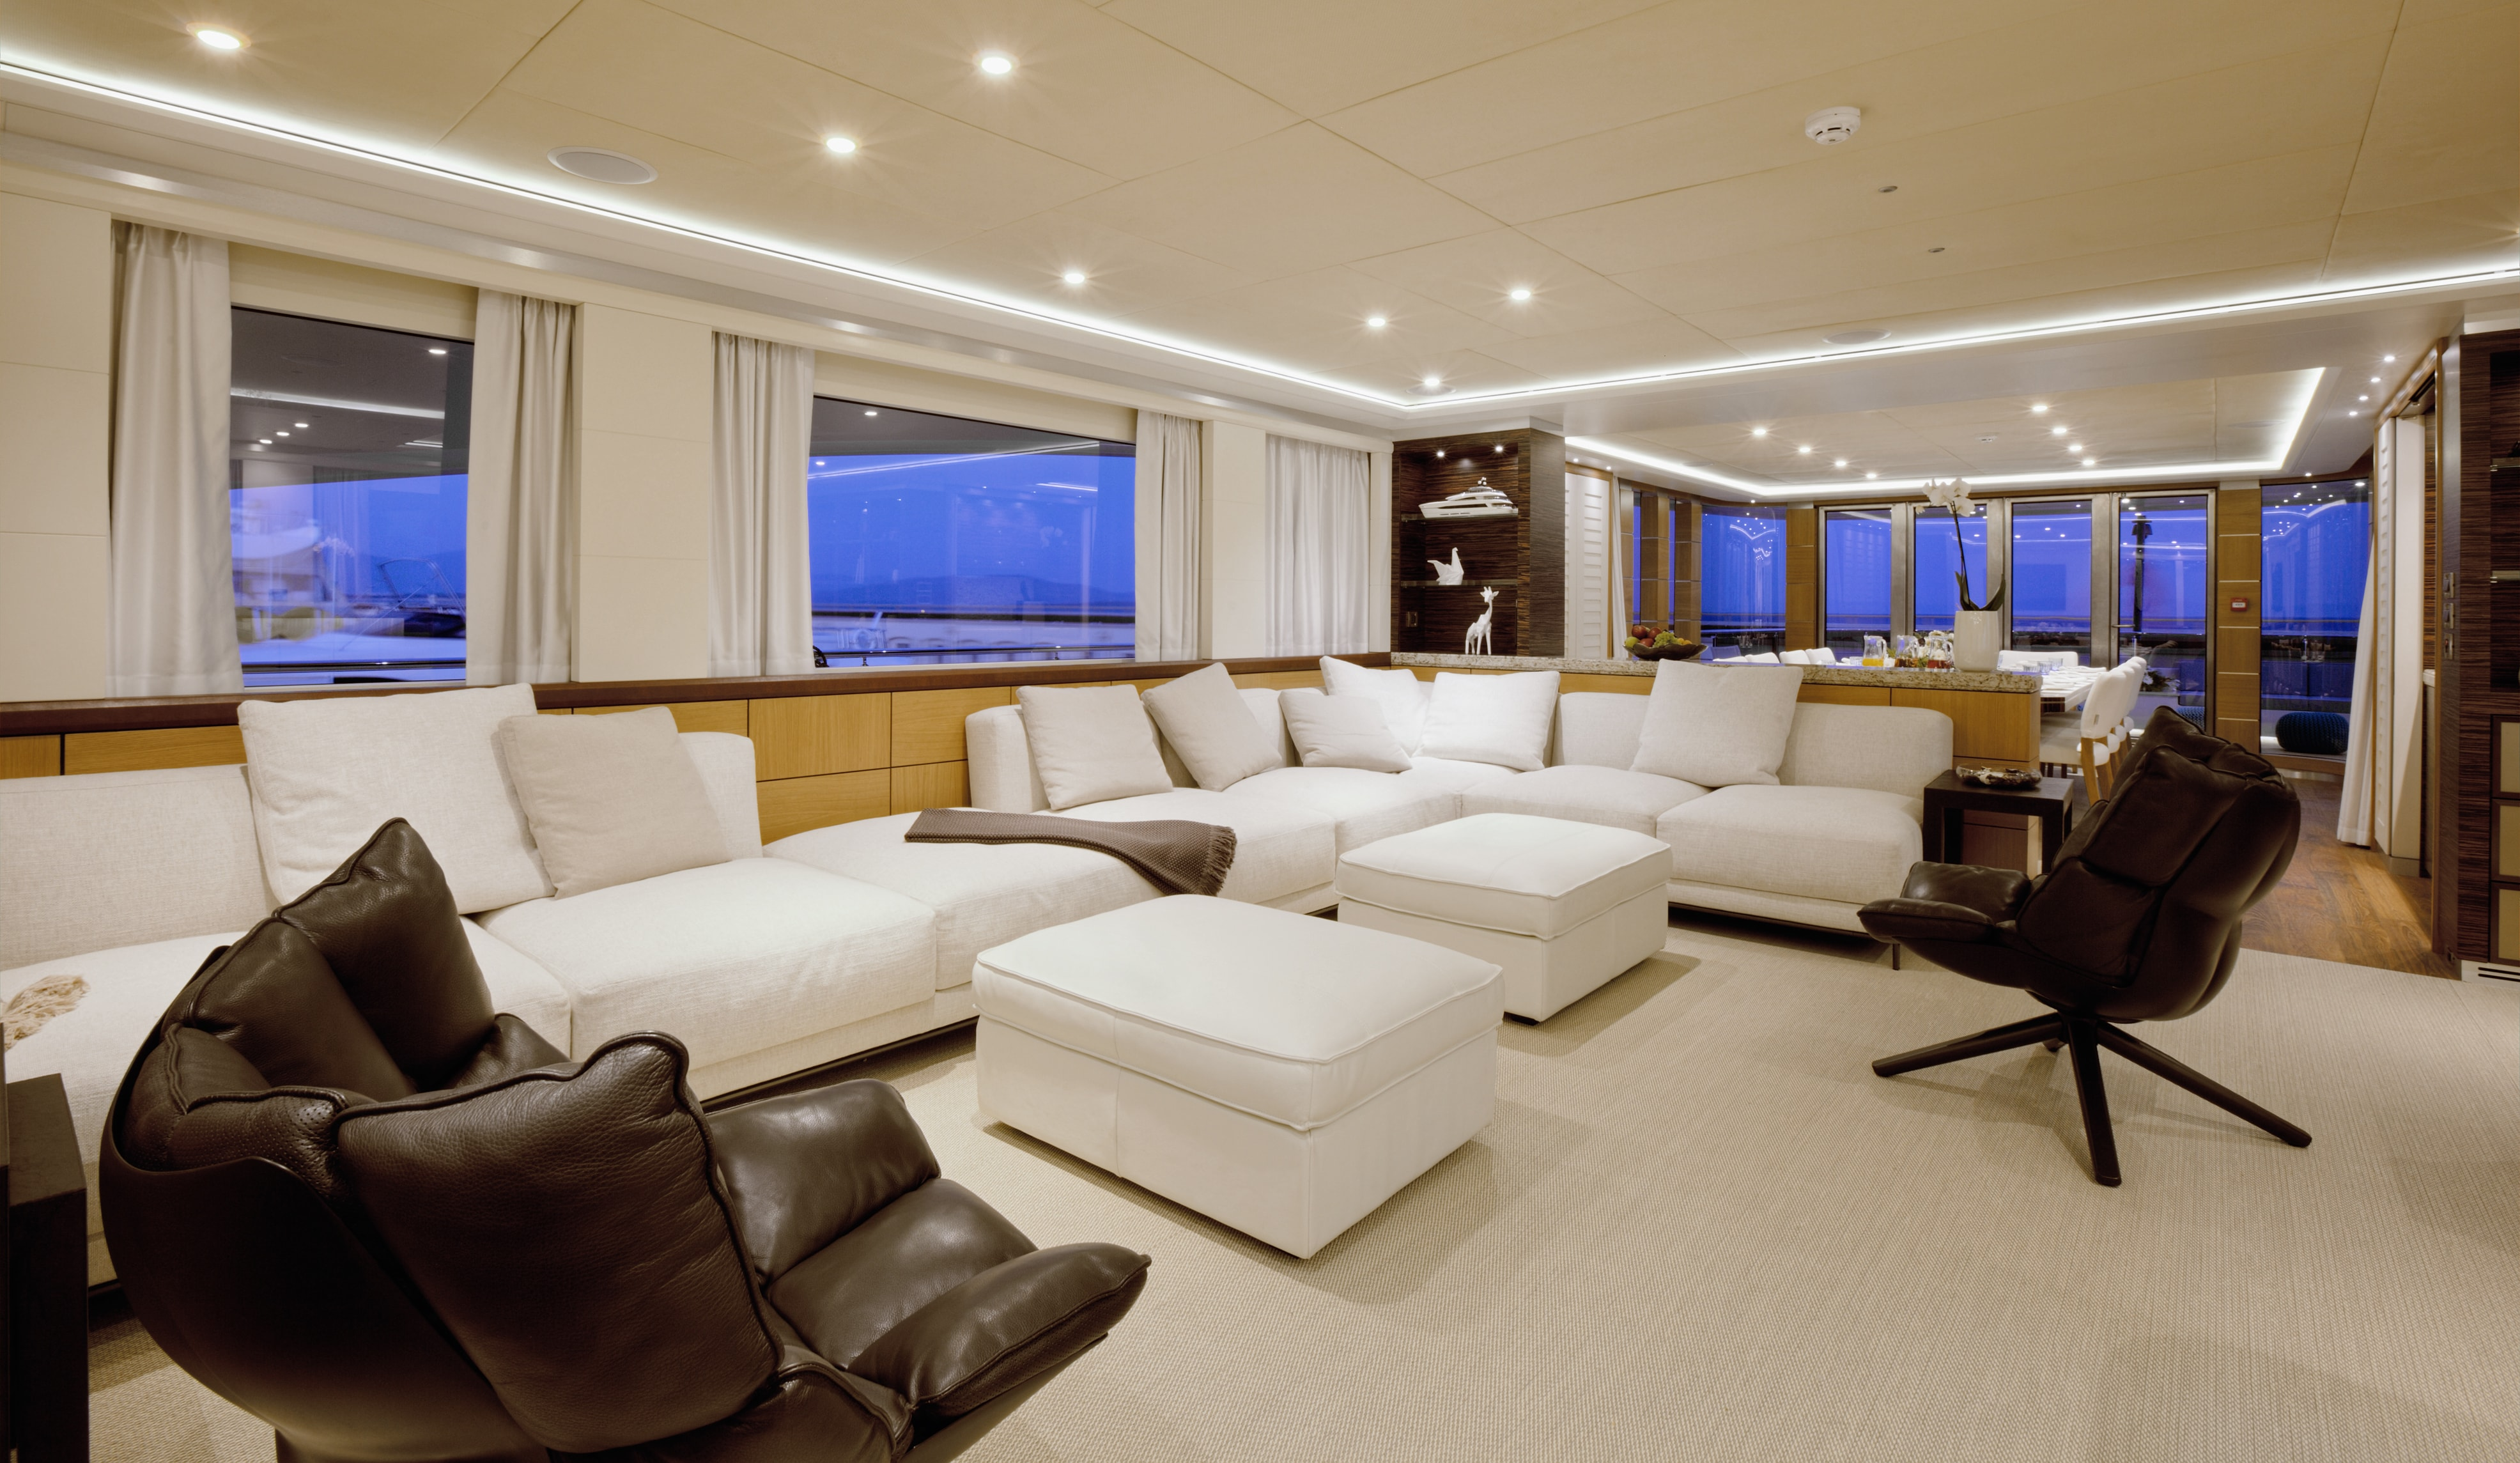 Curvelle Quaranta Yacht For Sale Saloon Deck Lounge2-min